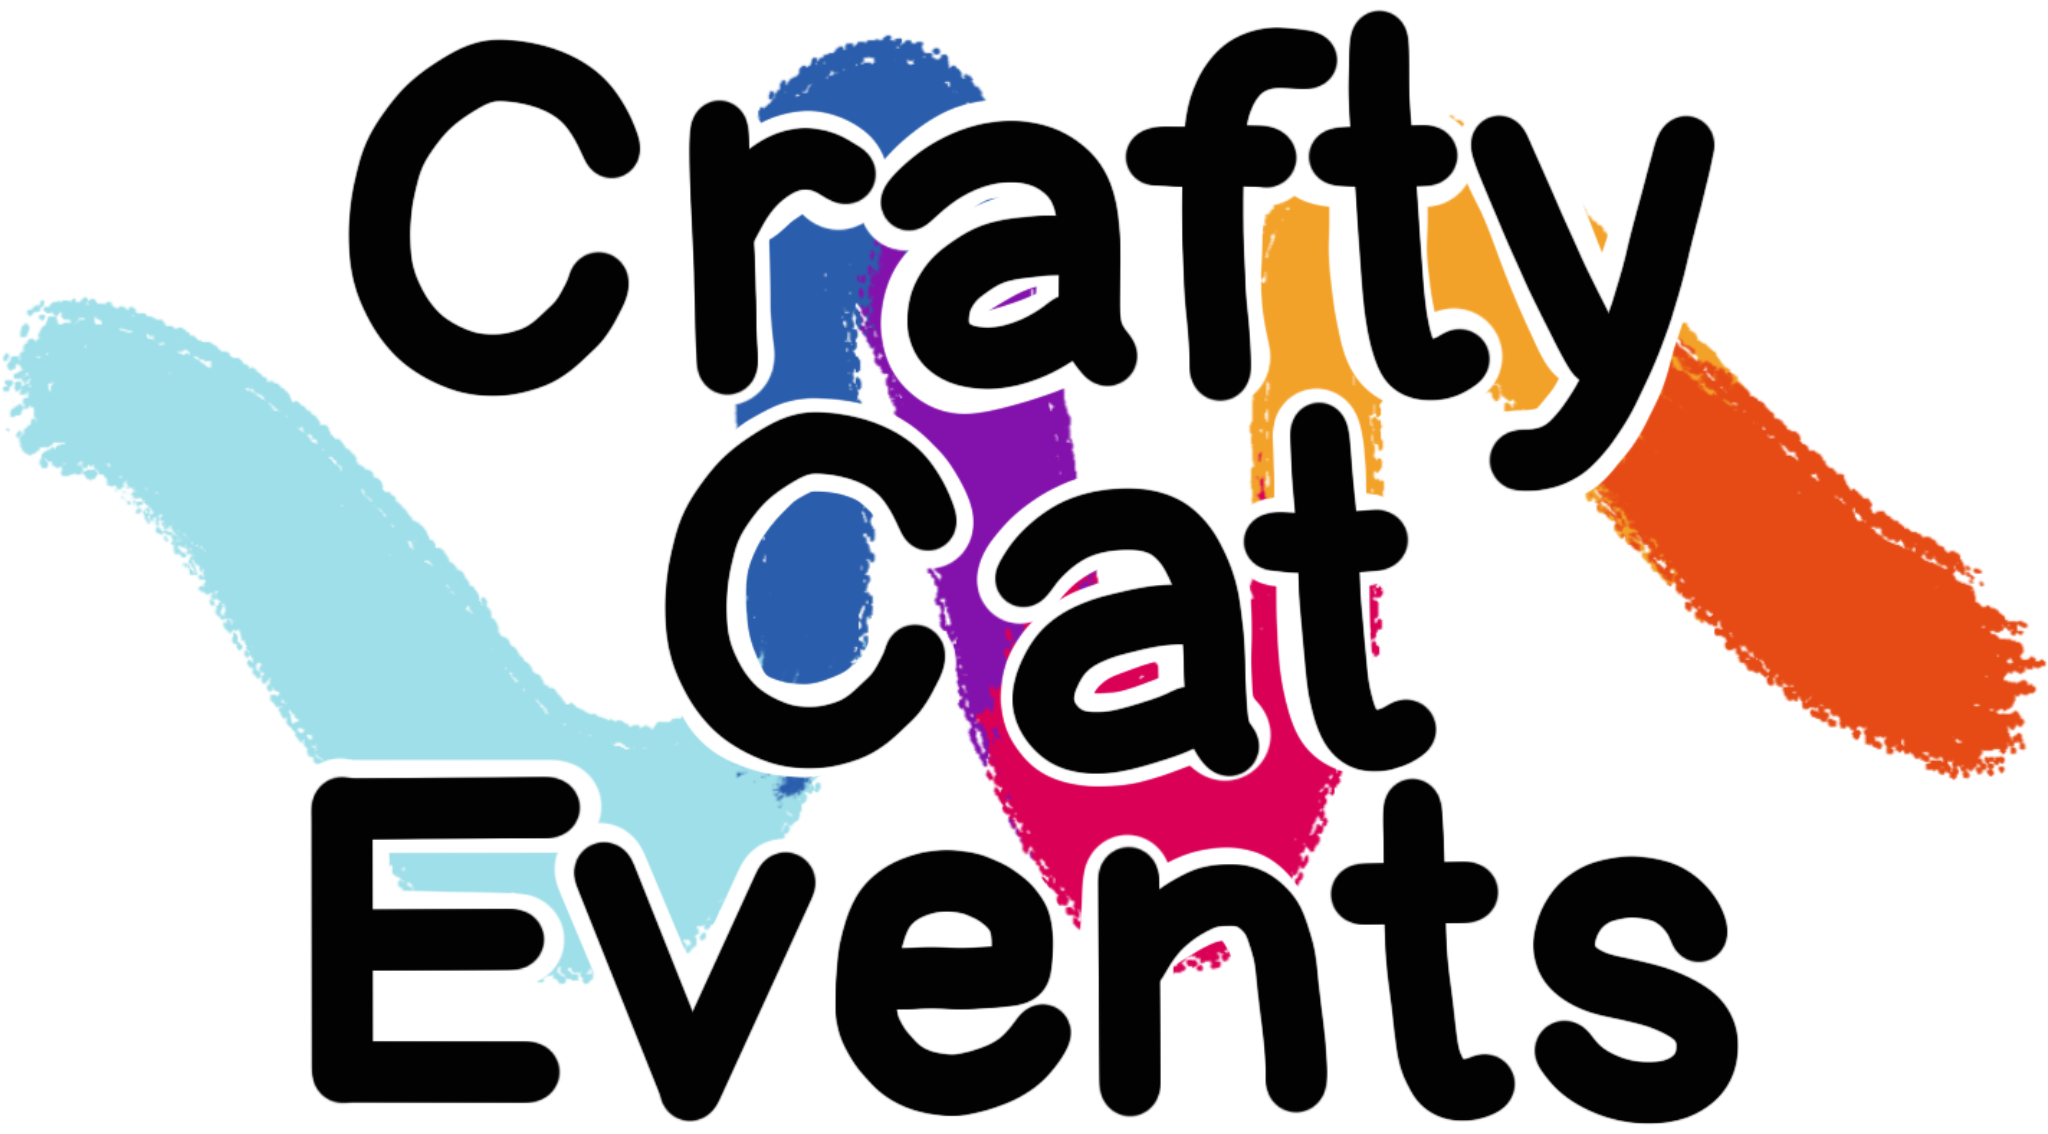 Crafty Cat Events